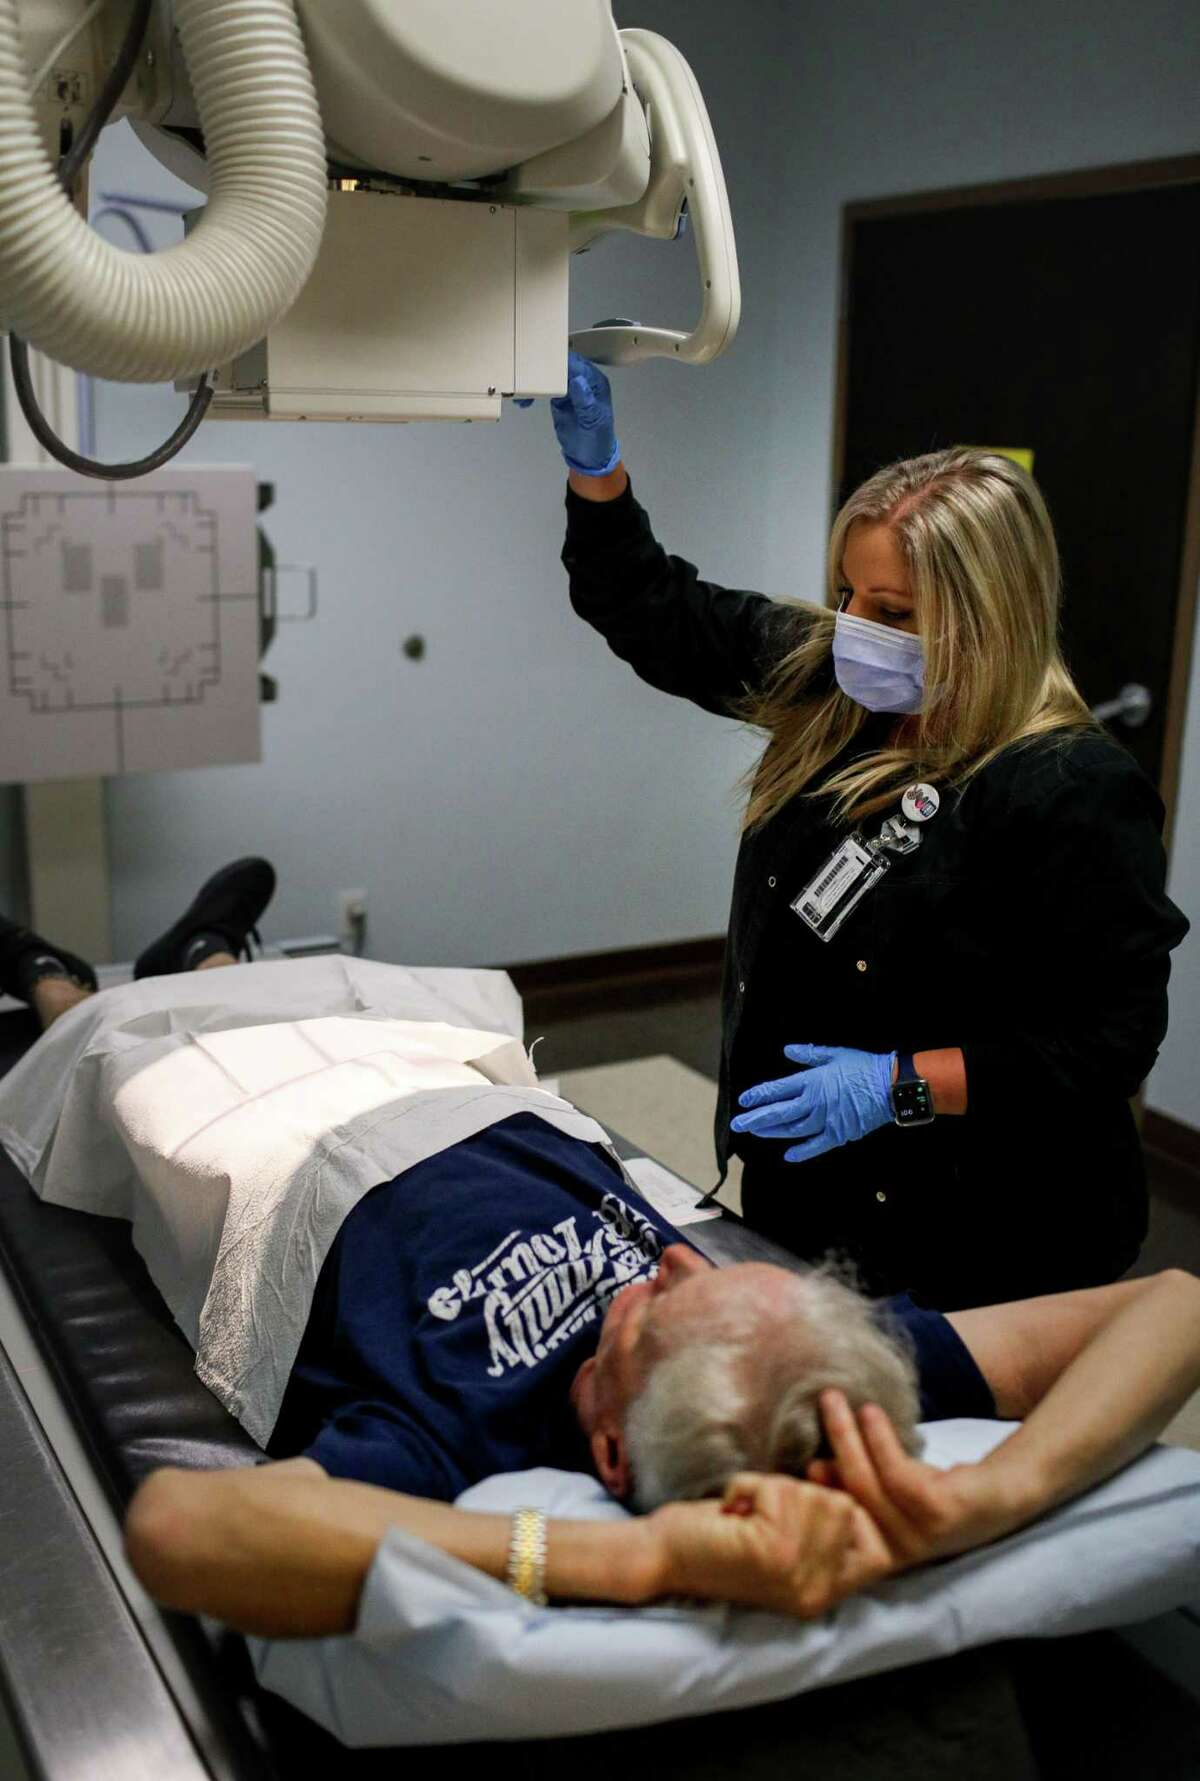 Tommy Goodwin, left, a professional stuntman who had his pelvis surgically repaired after an accident, prepares to have X-rays done by Tiffany Bryant, a radiology technician, Wednesday, Sept. 15, 2021, at an outpatient clinic in Houston.